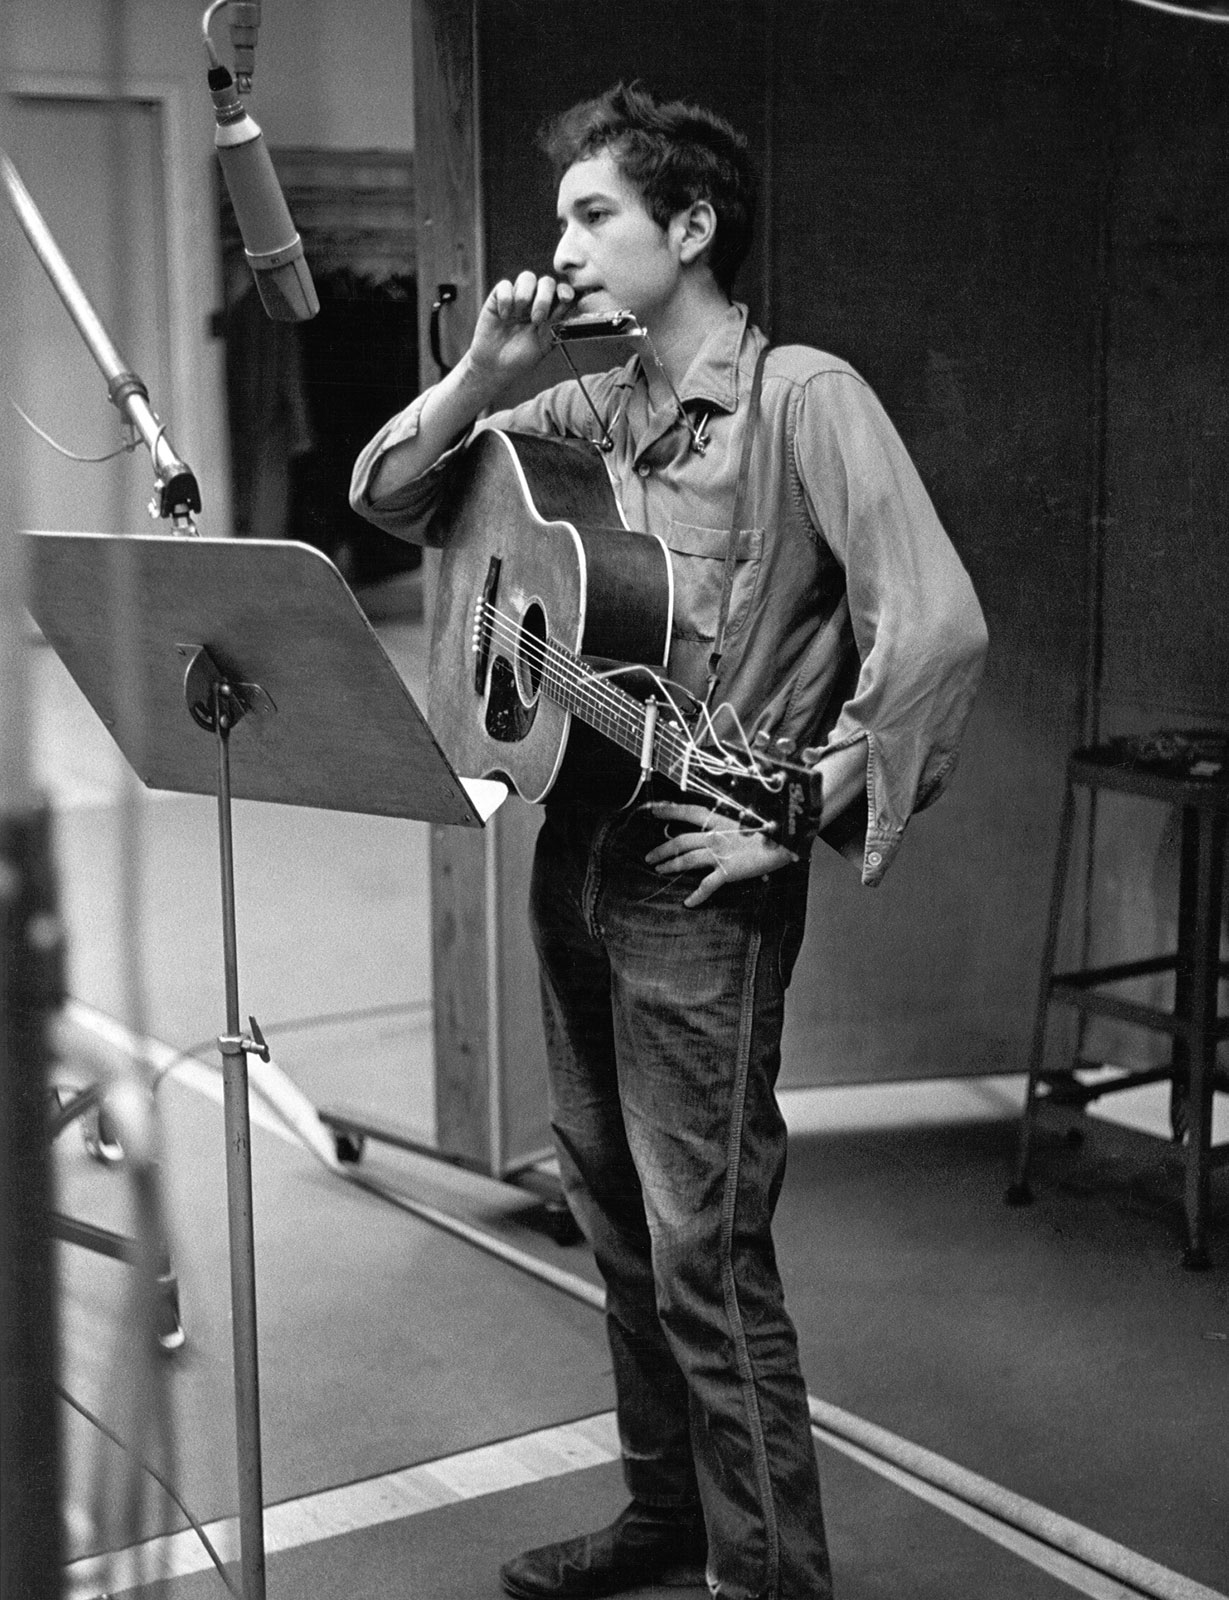 Dylan in the studio